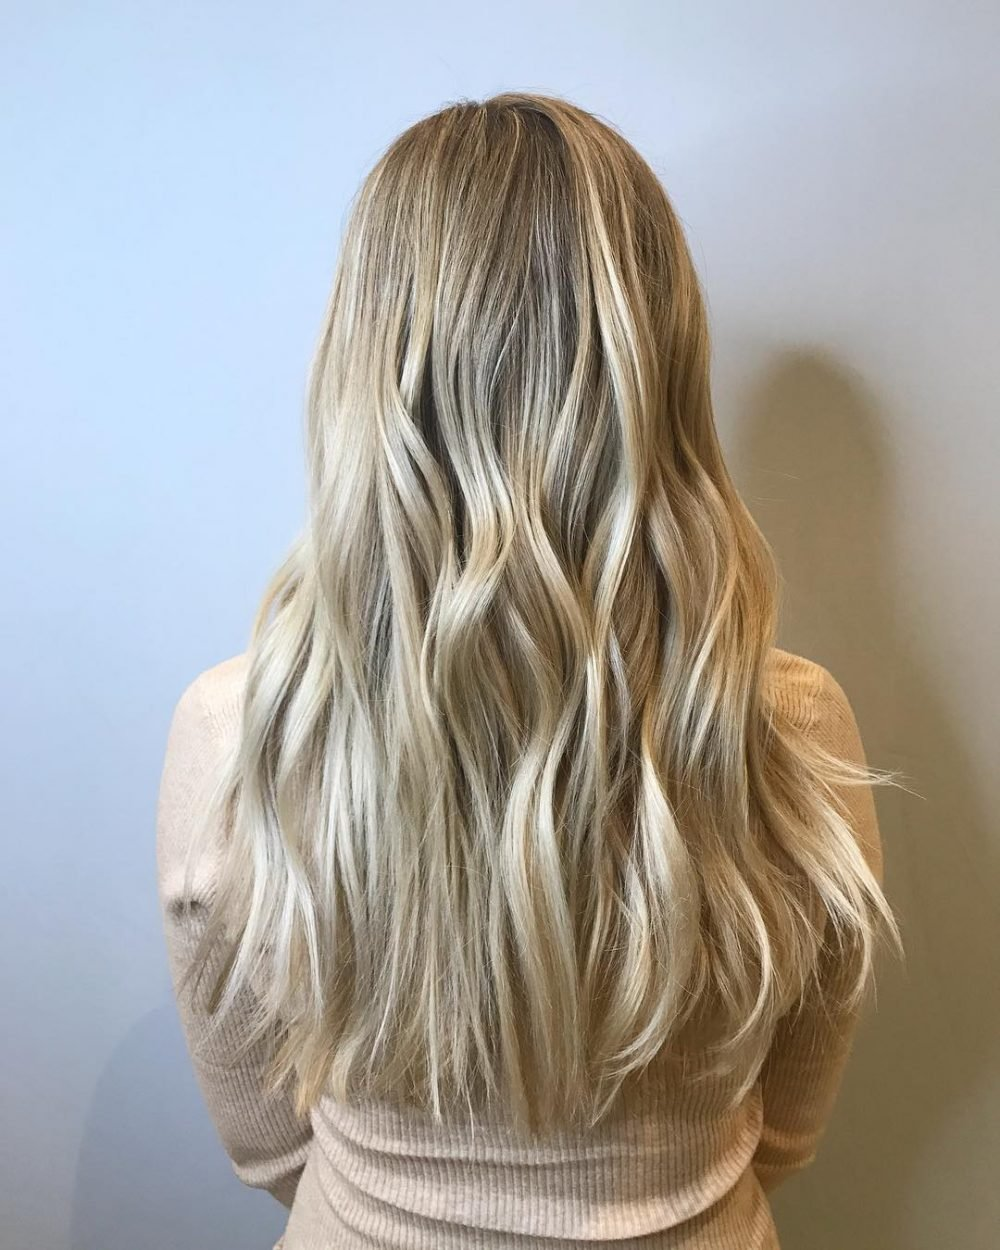 The Best Top 30 Long Blonde Hair Ideas Of 2019 Pictures